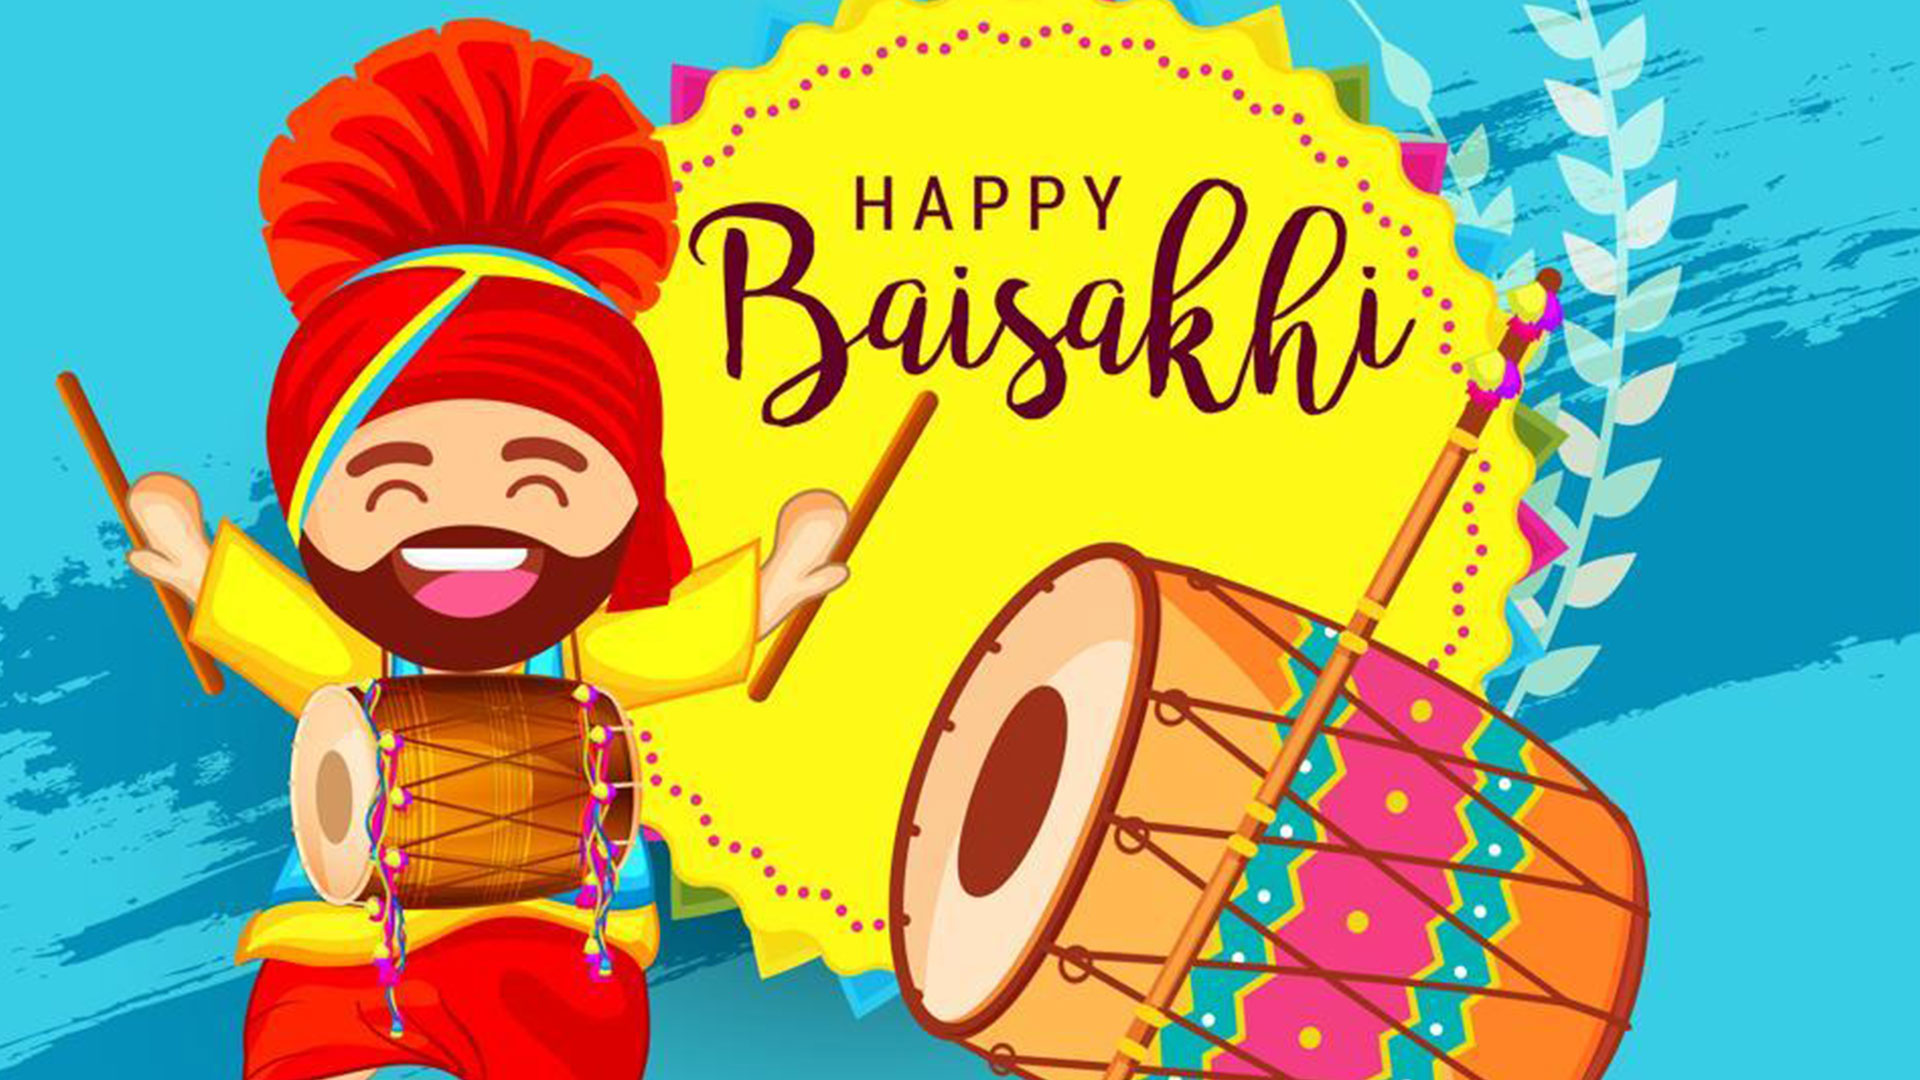 BAISAKHI: THE FESTIVAL OF FERVOUR AND VIBRANCY